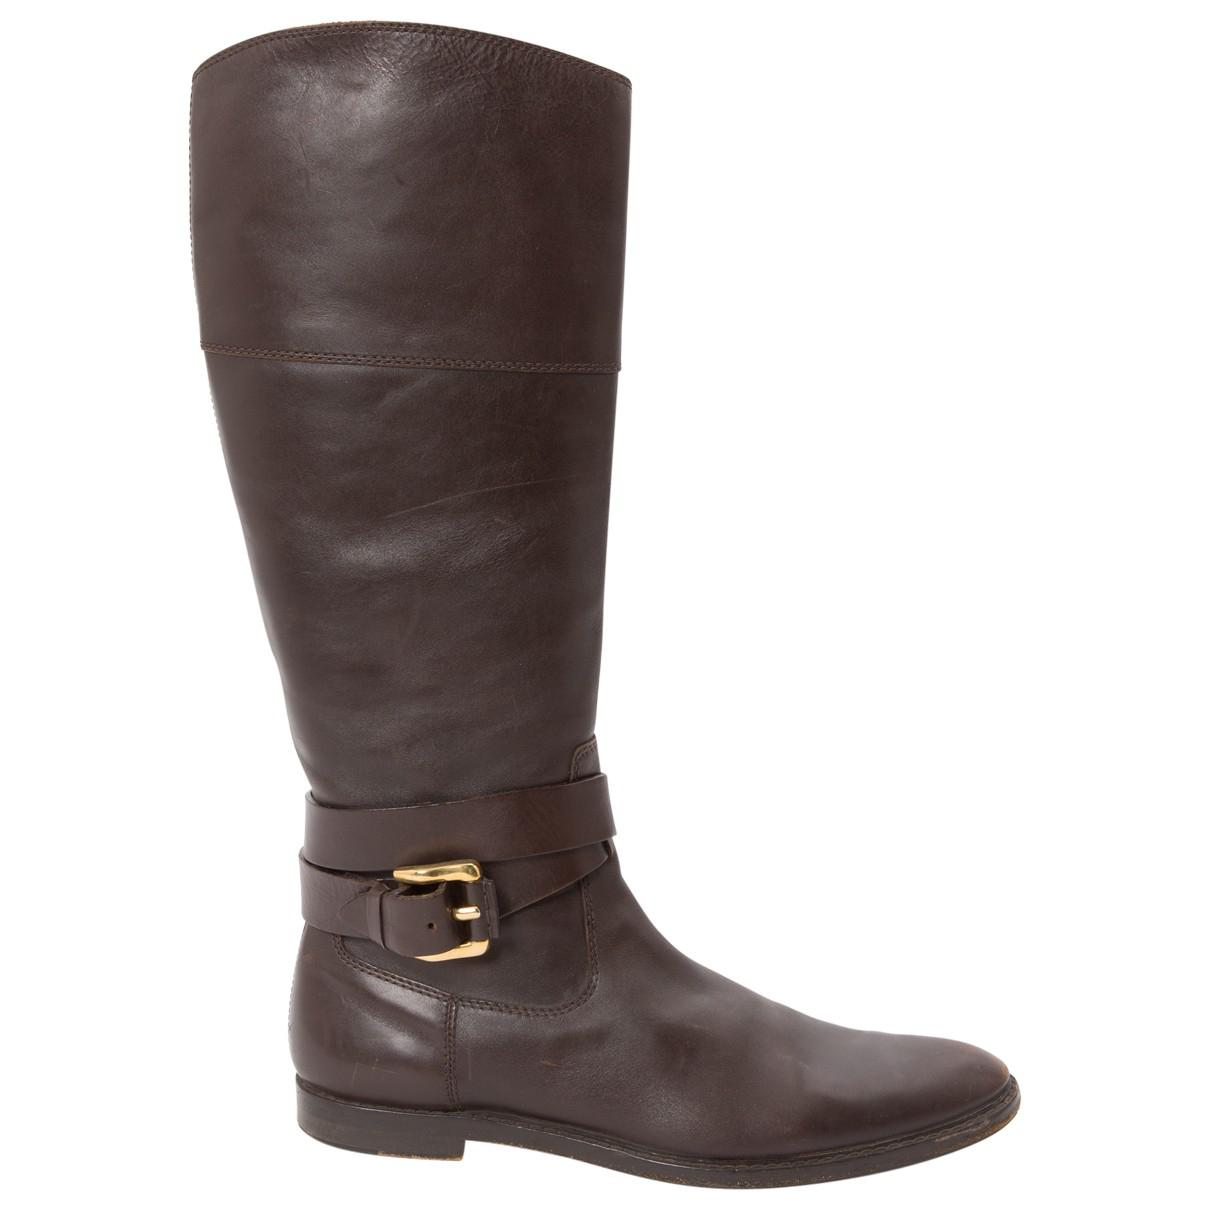 Pre-owned - Leather riding boots Burberry dLxfyCez